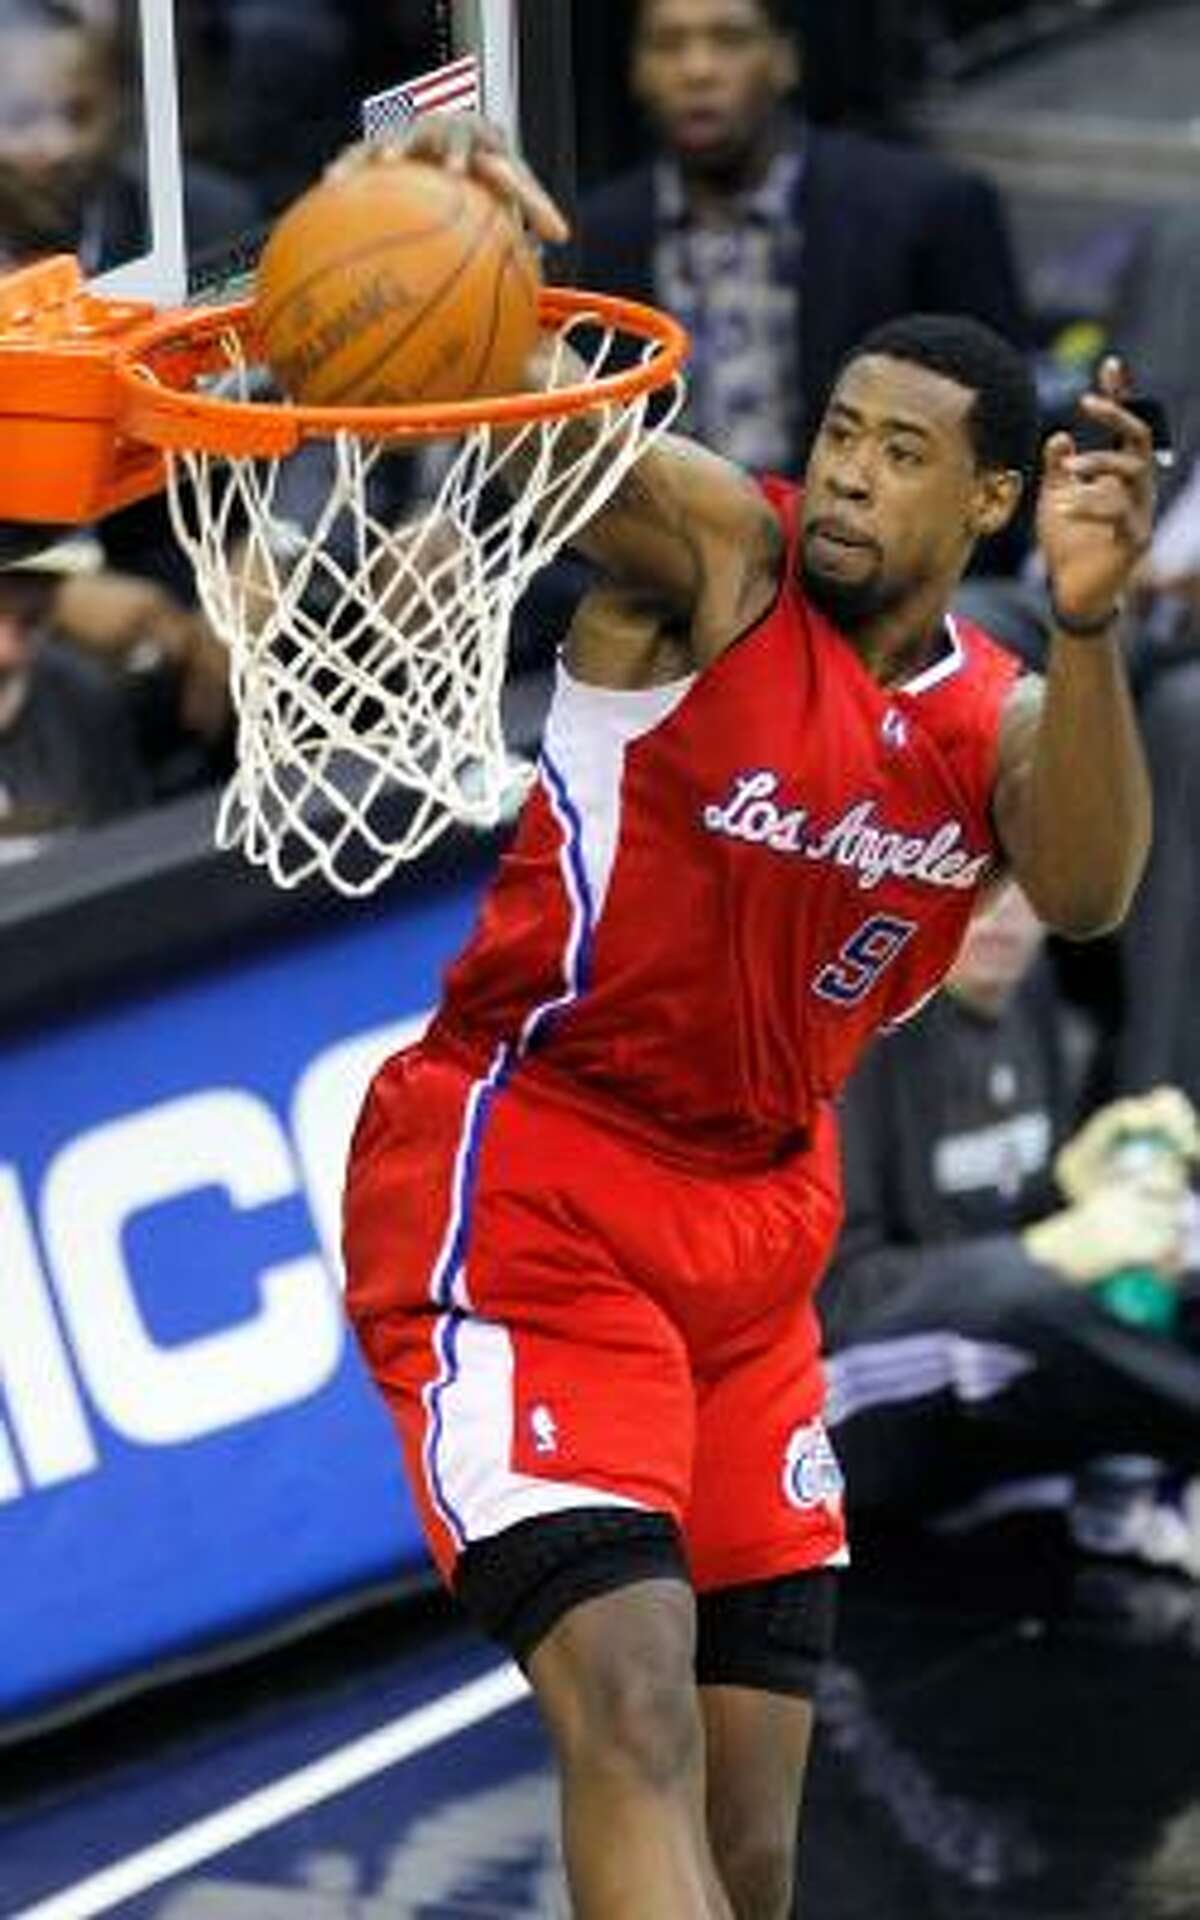 3. Reel in a center. With Yao Ming limited to five games in the past two seasons, the Rockets need a traditional, full-sized center, such as Clippers free agent-to-be DeAndre Jordan (pictured), in the paint and at the rim.